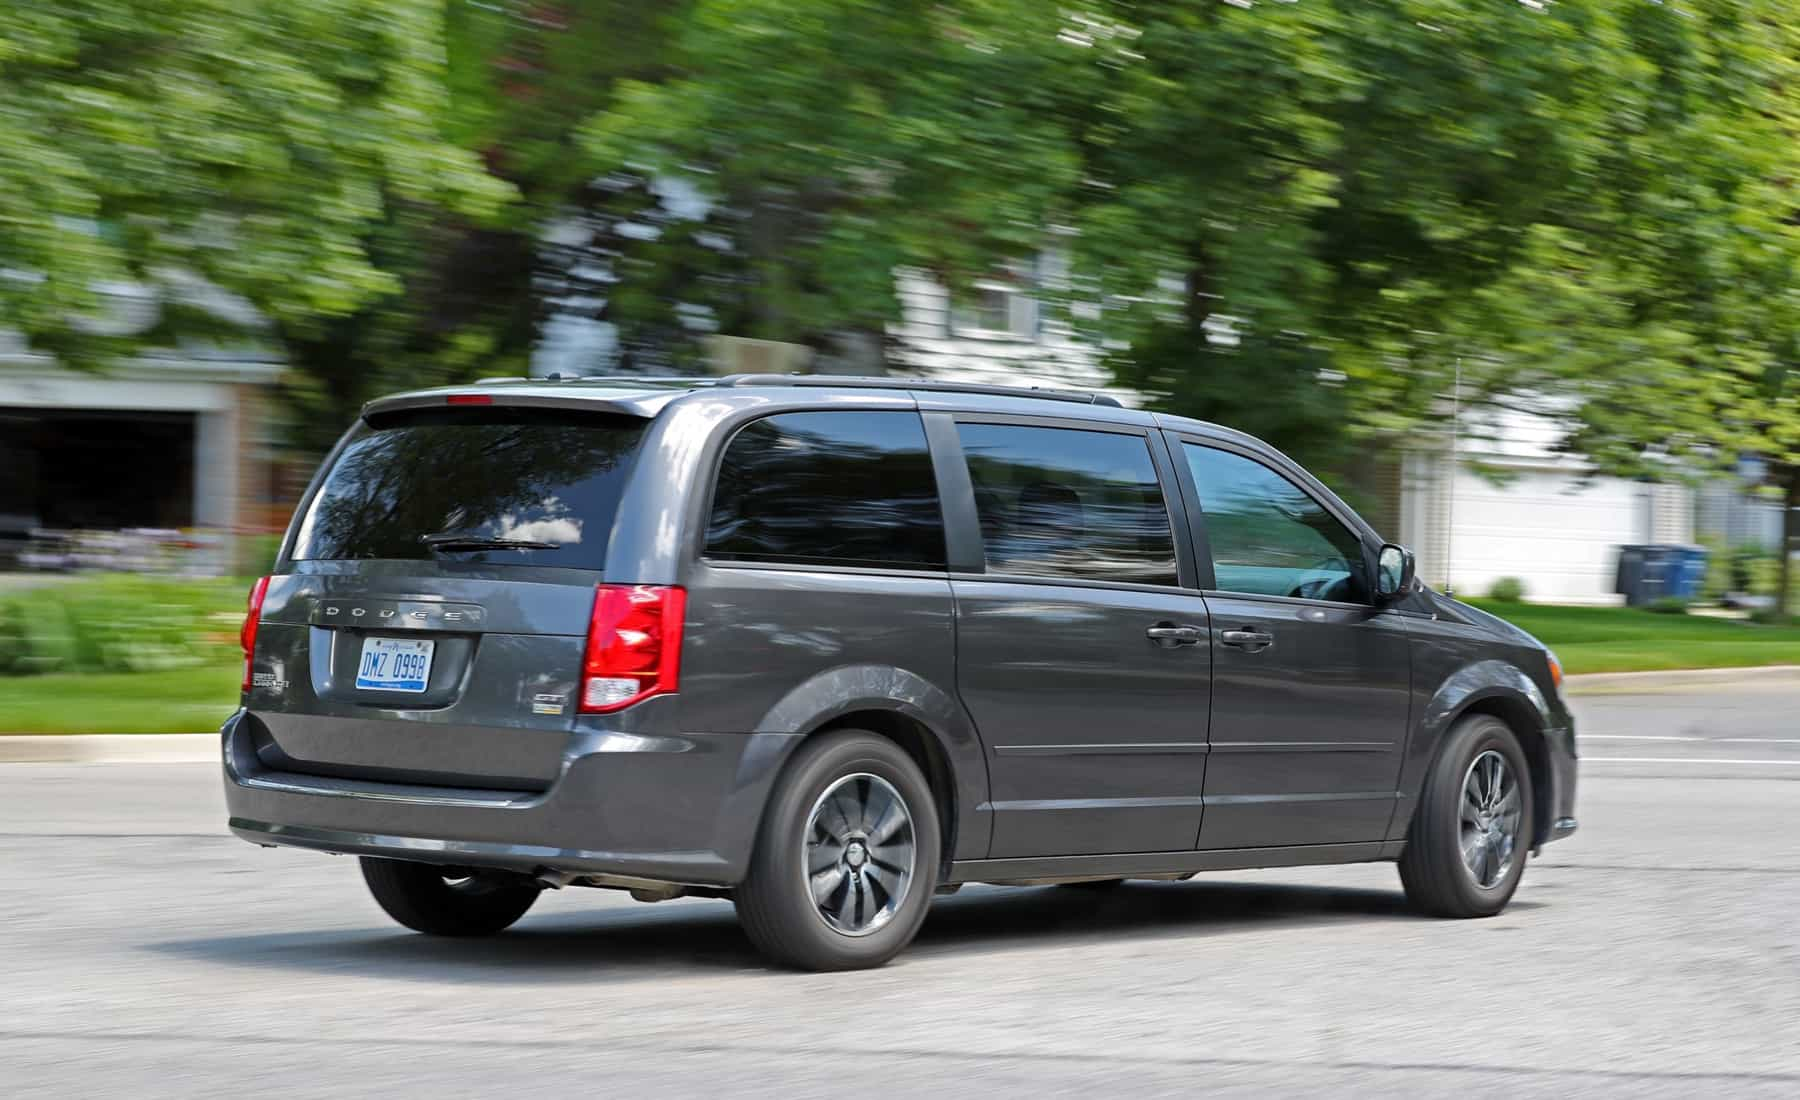 2017 Dodge Grand Caravan Test Drive Rear And Side Preview (View 9 of 47)